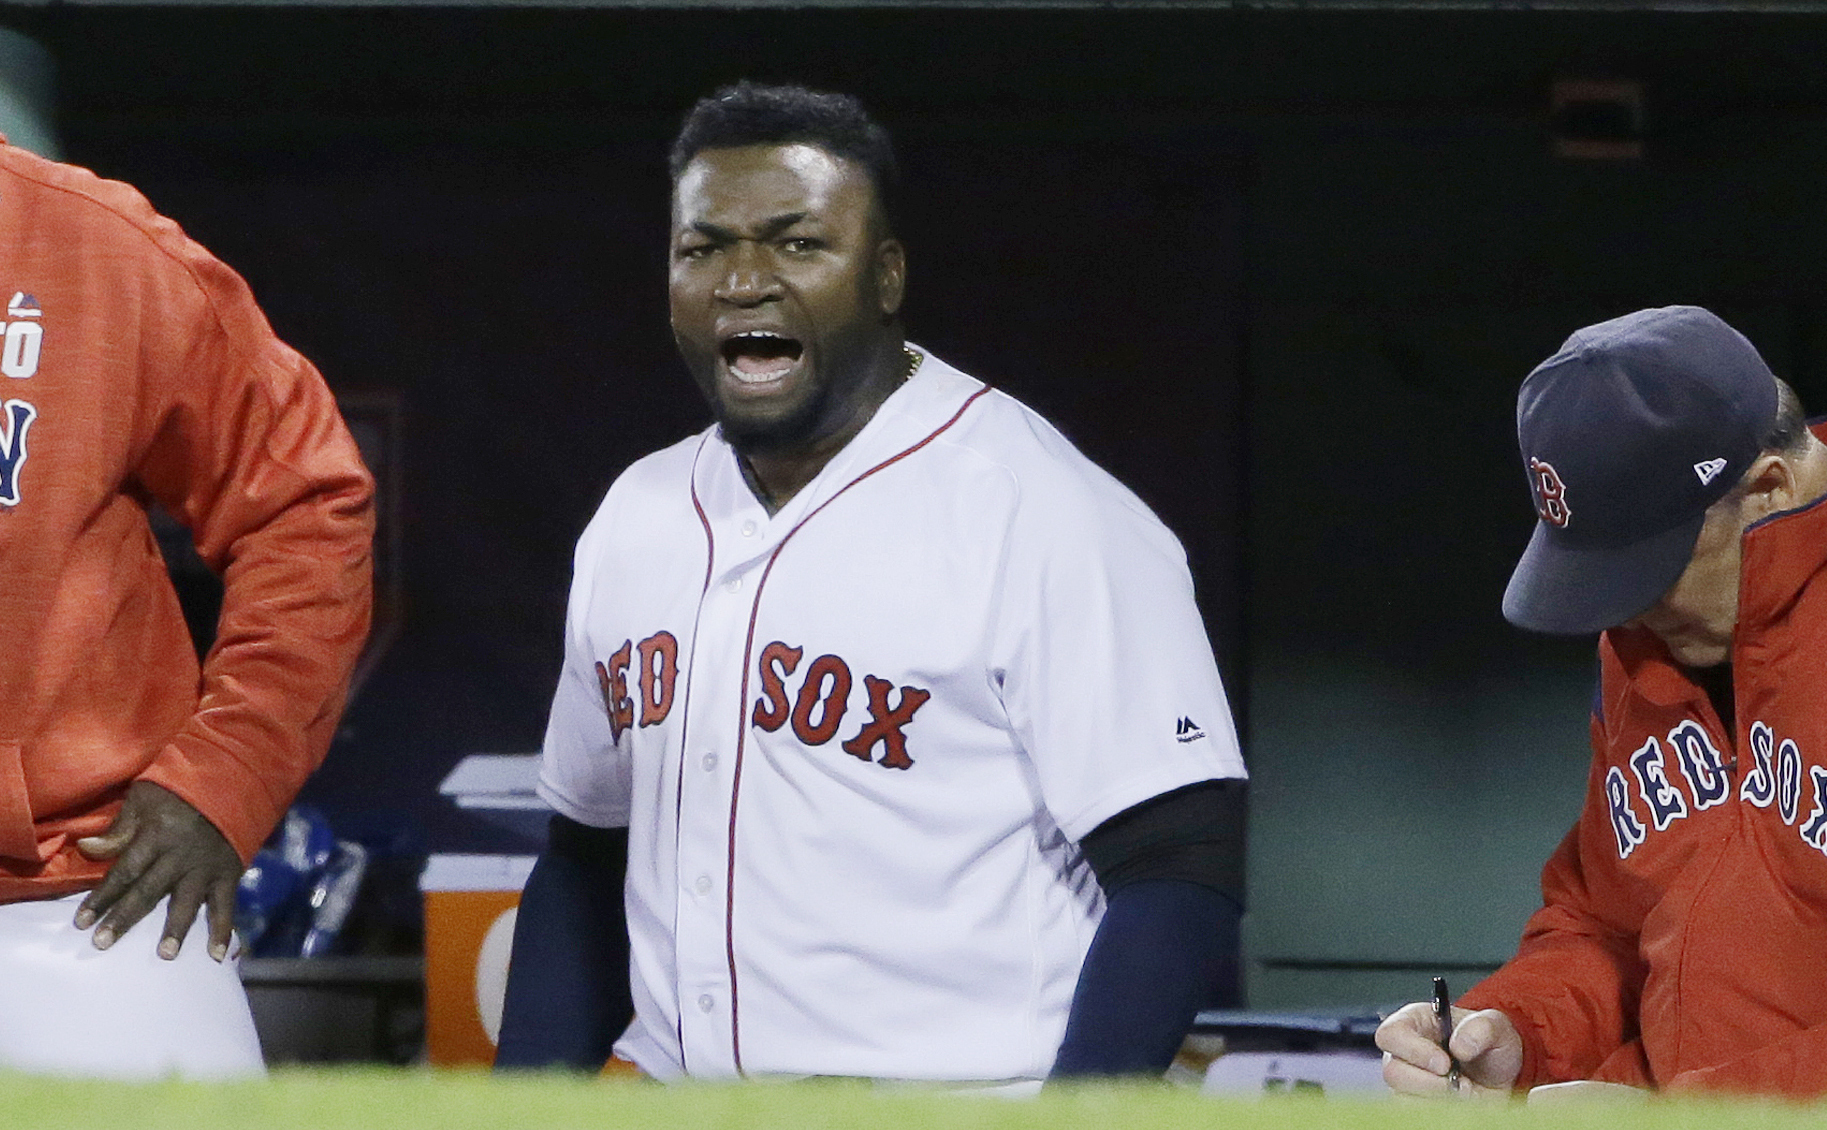 David_Ortiz_Shot_Baseball_37521-159532.jpg31754306